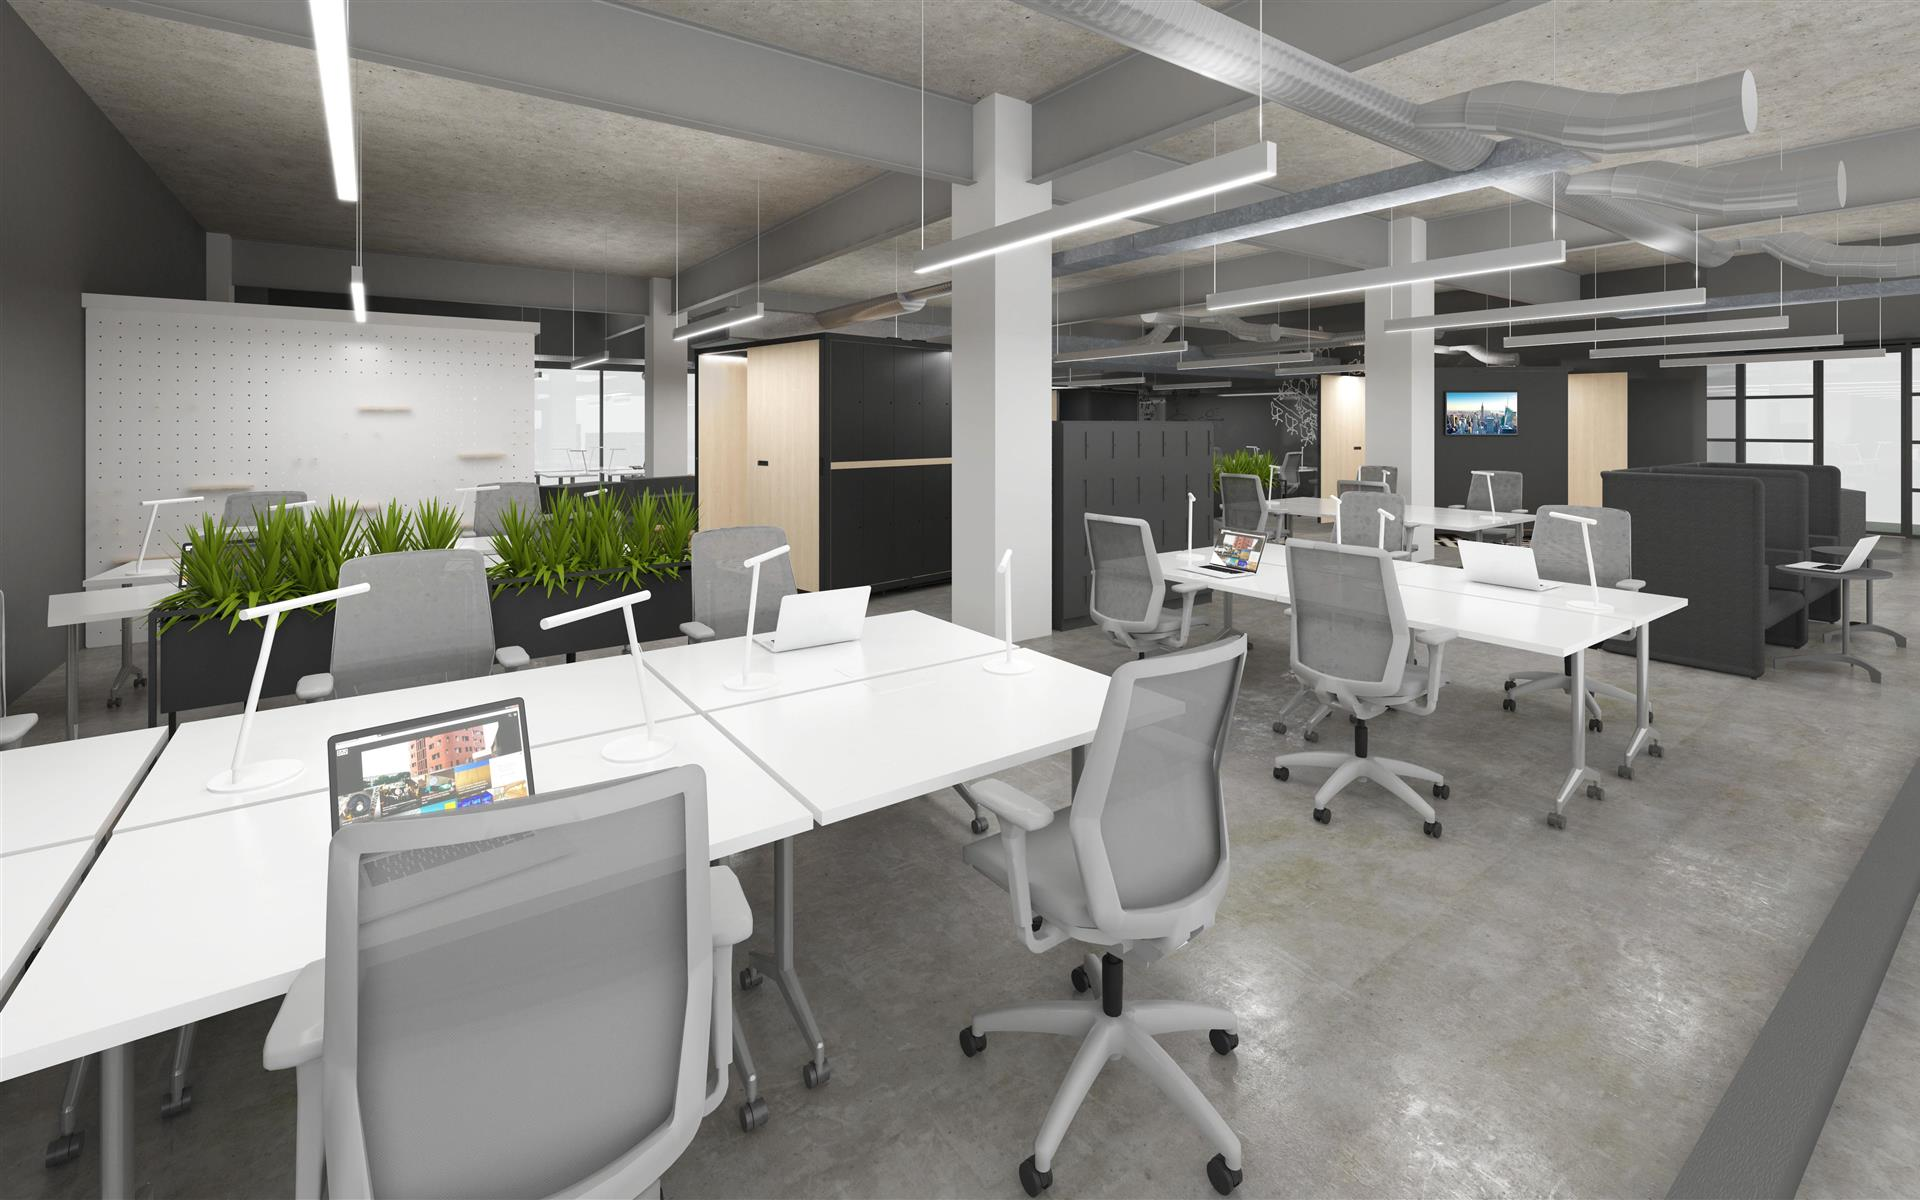 altSpace | Chicago - altSpace for 40